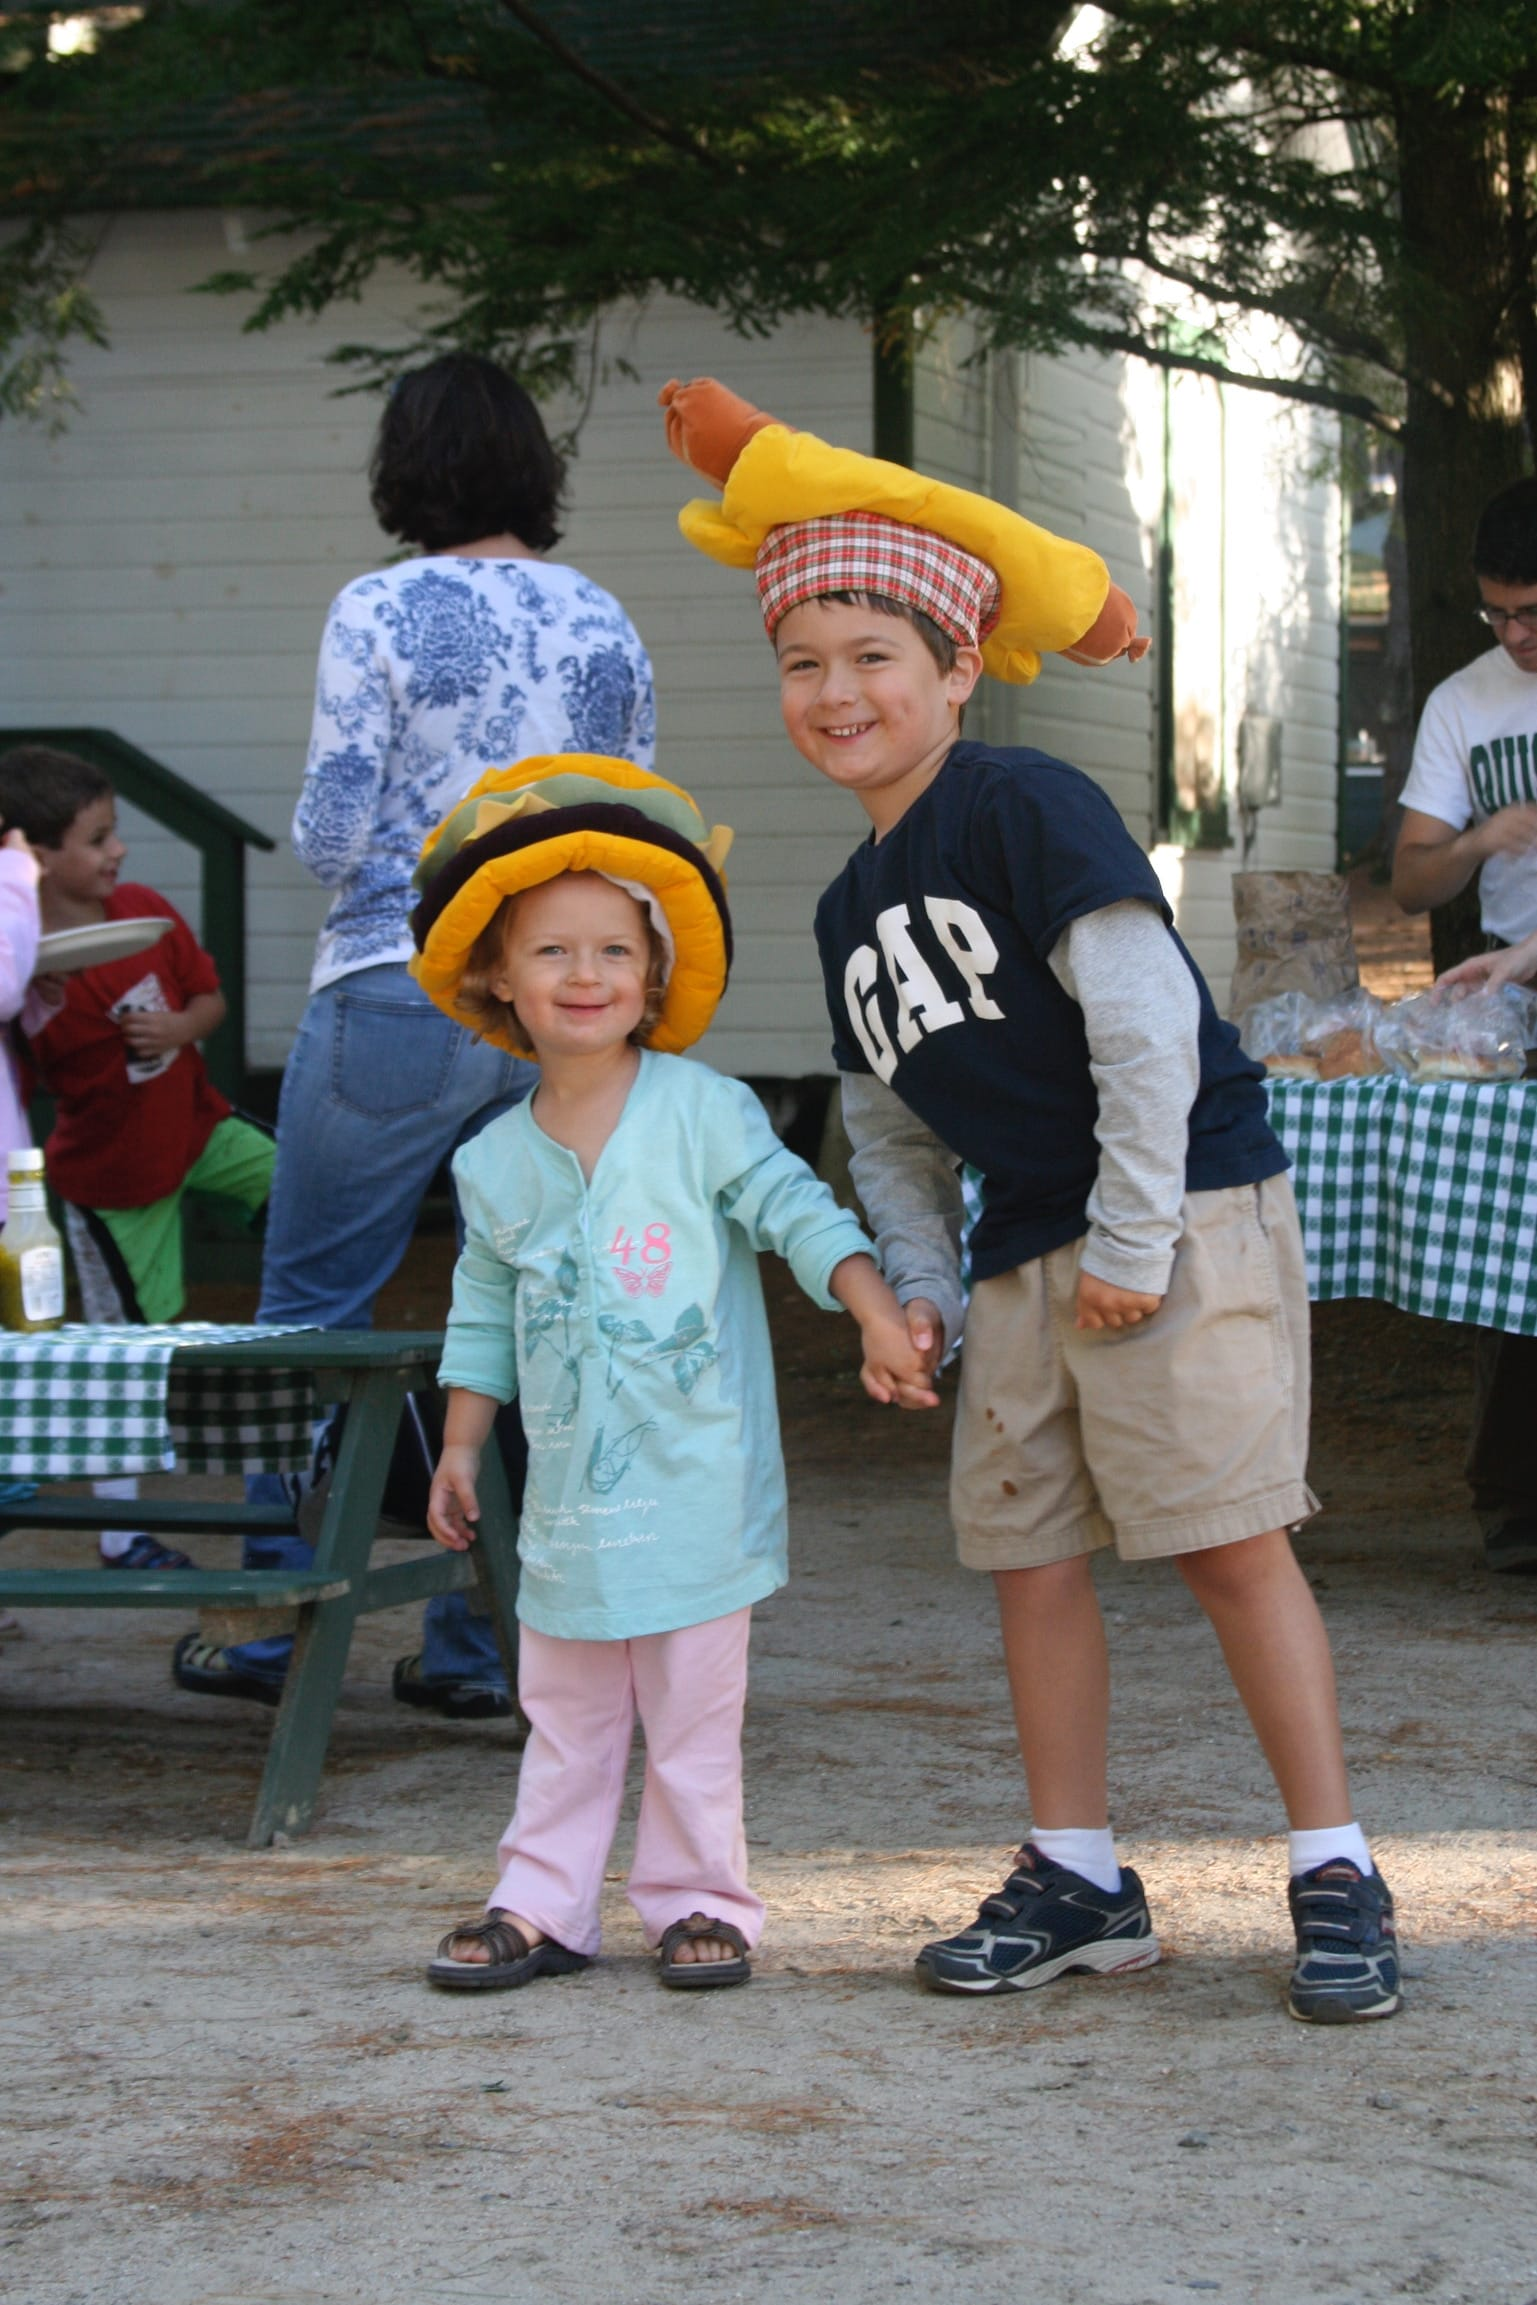 Boy and girl wearing hamburger and hotdog hats